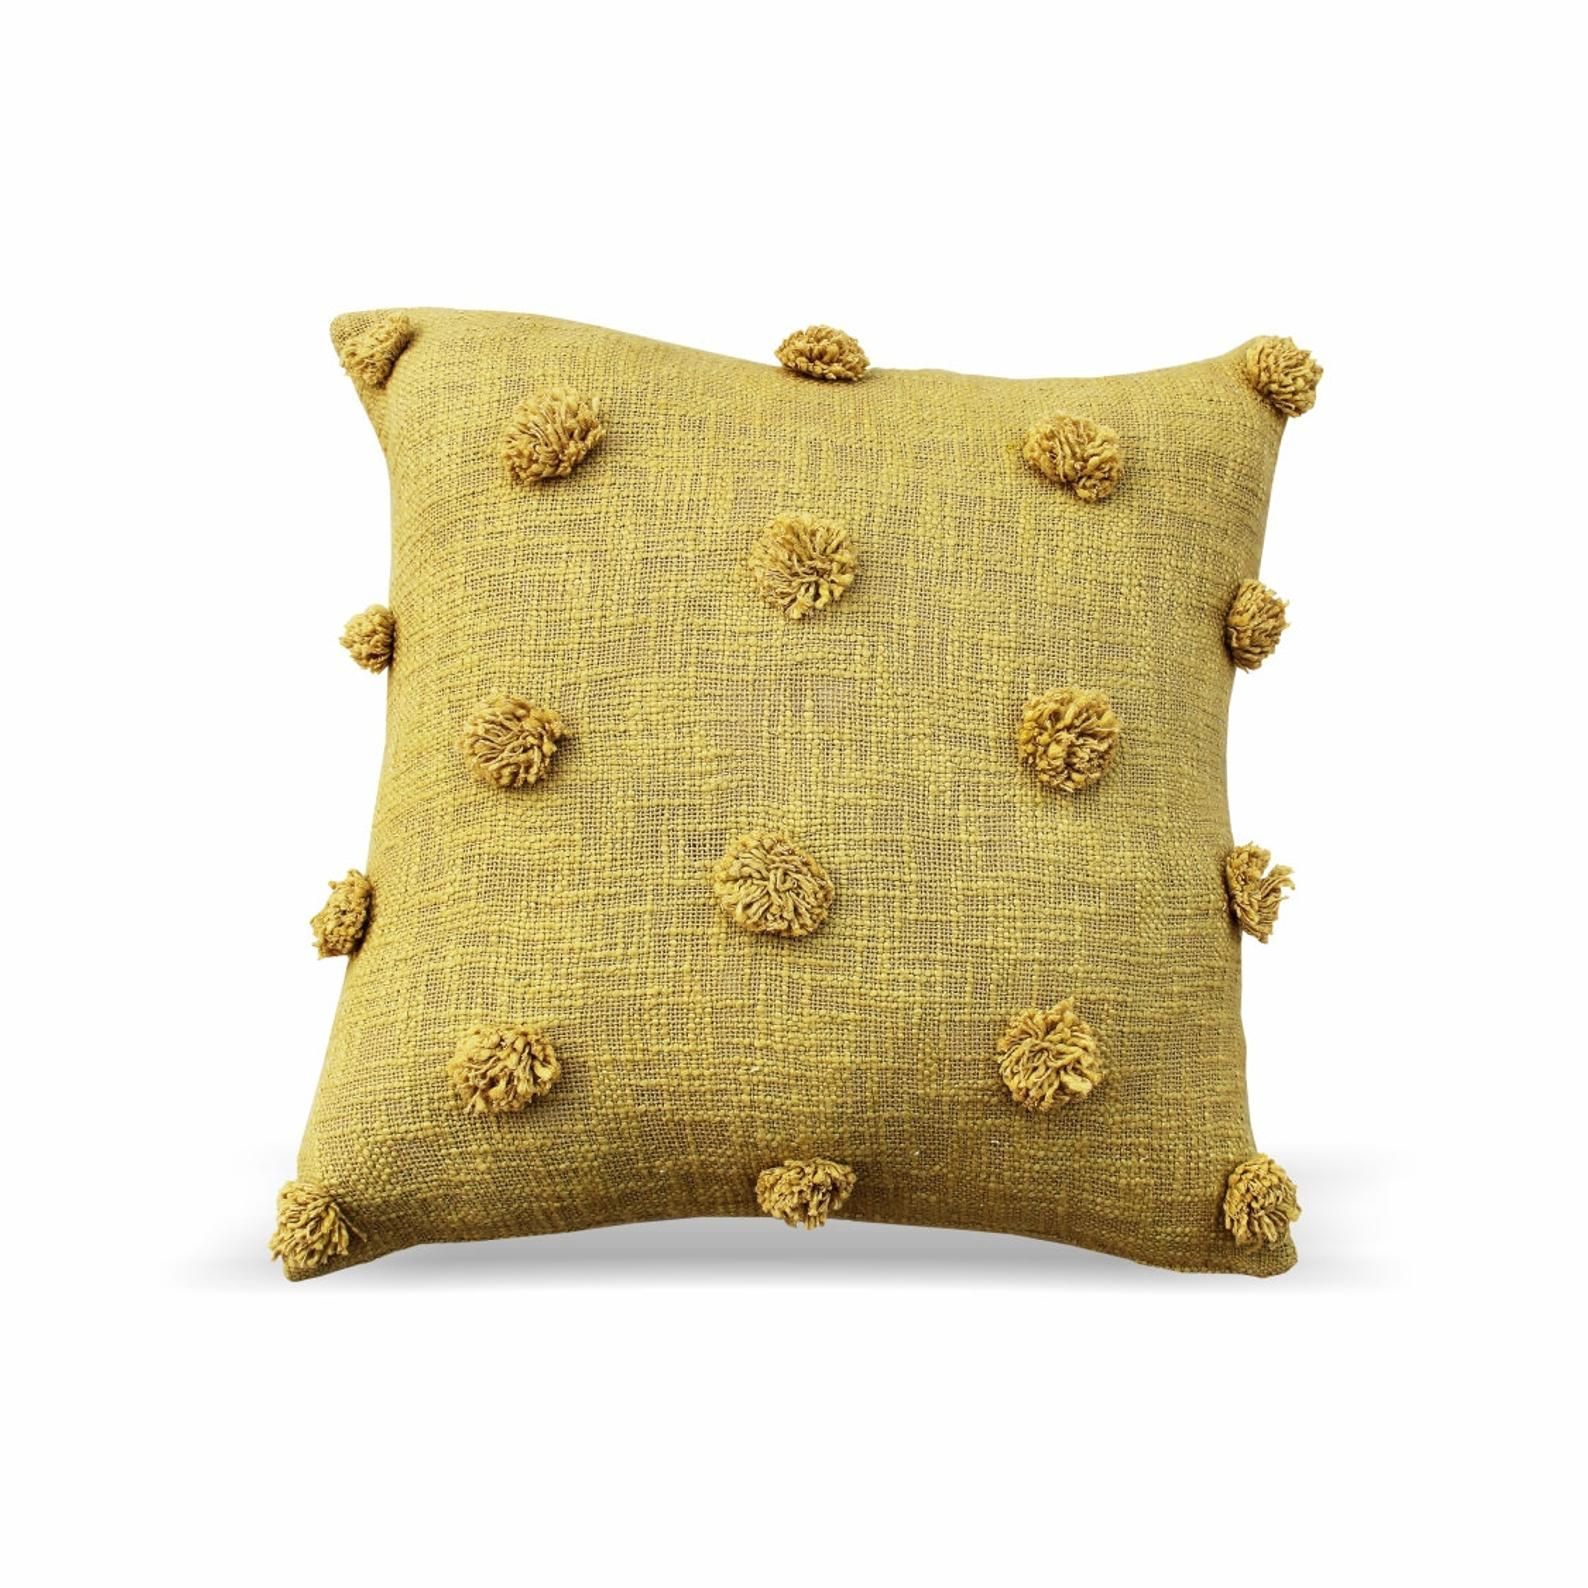 Mustard Color Handmade Cotton Cushion Cover Indian Dhurrie